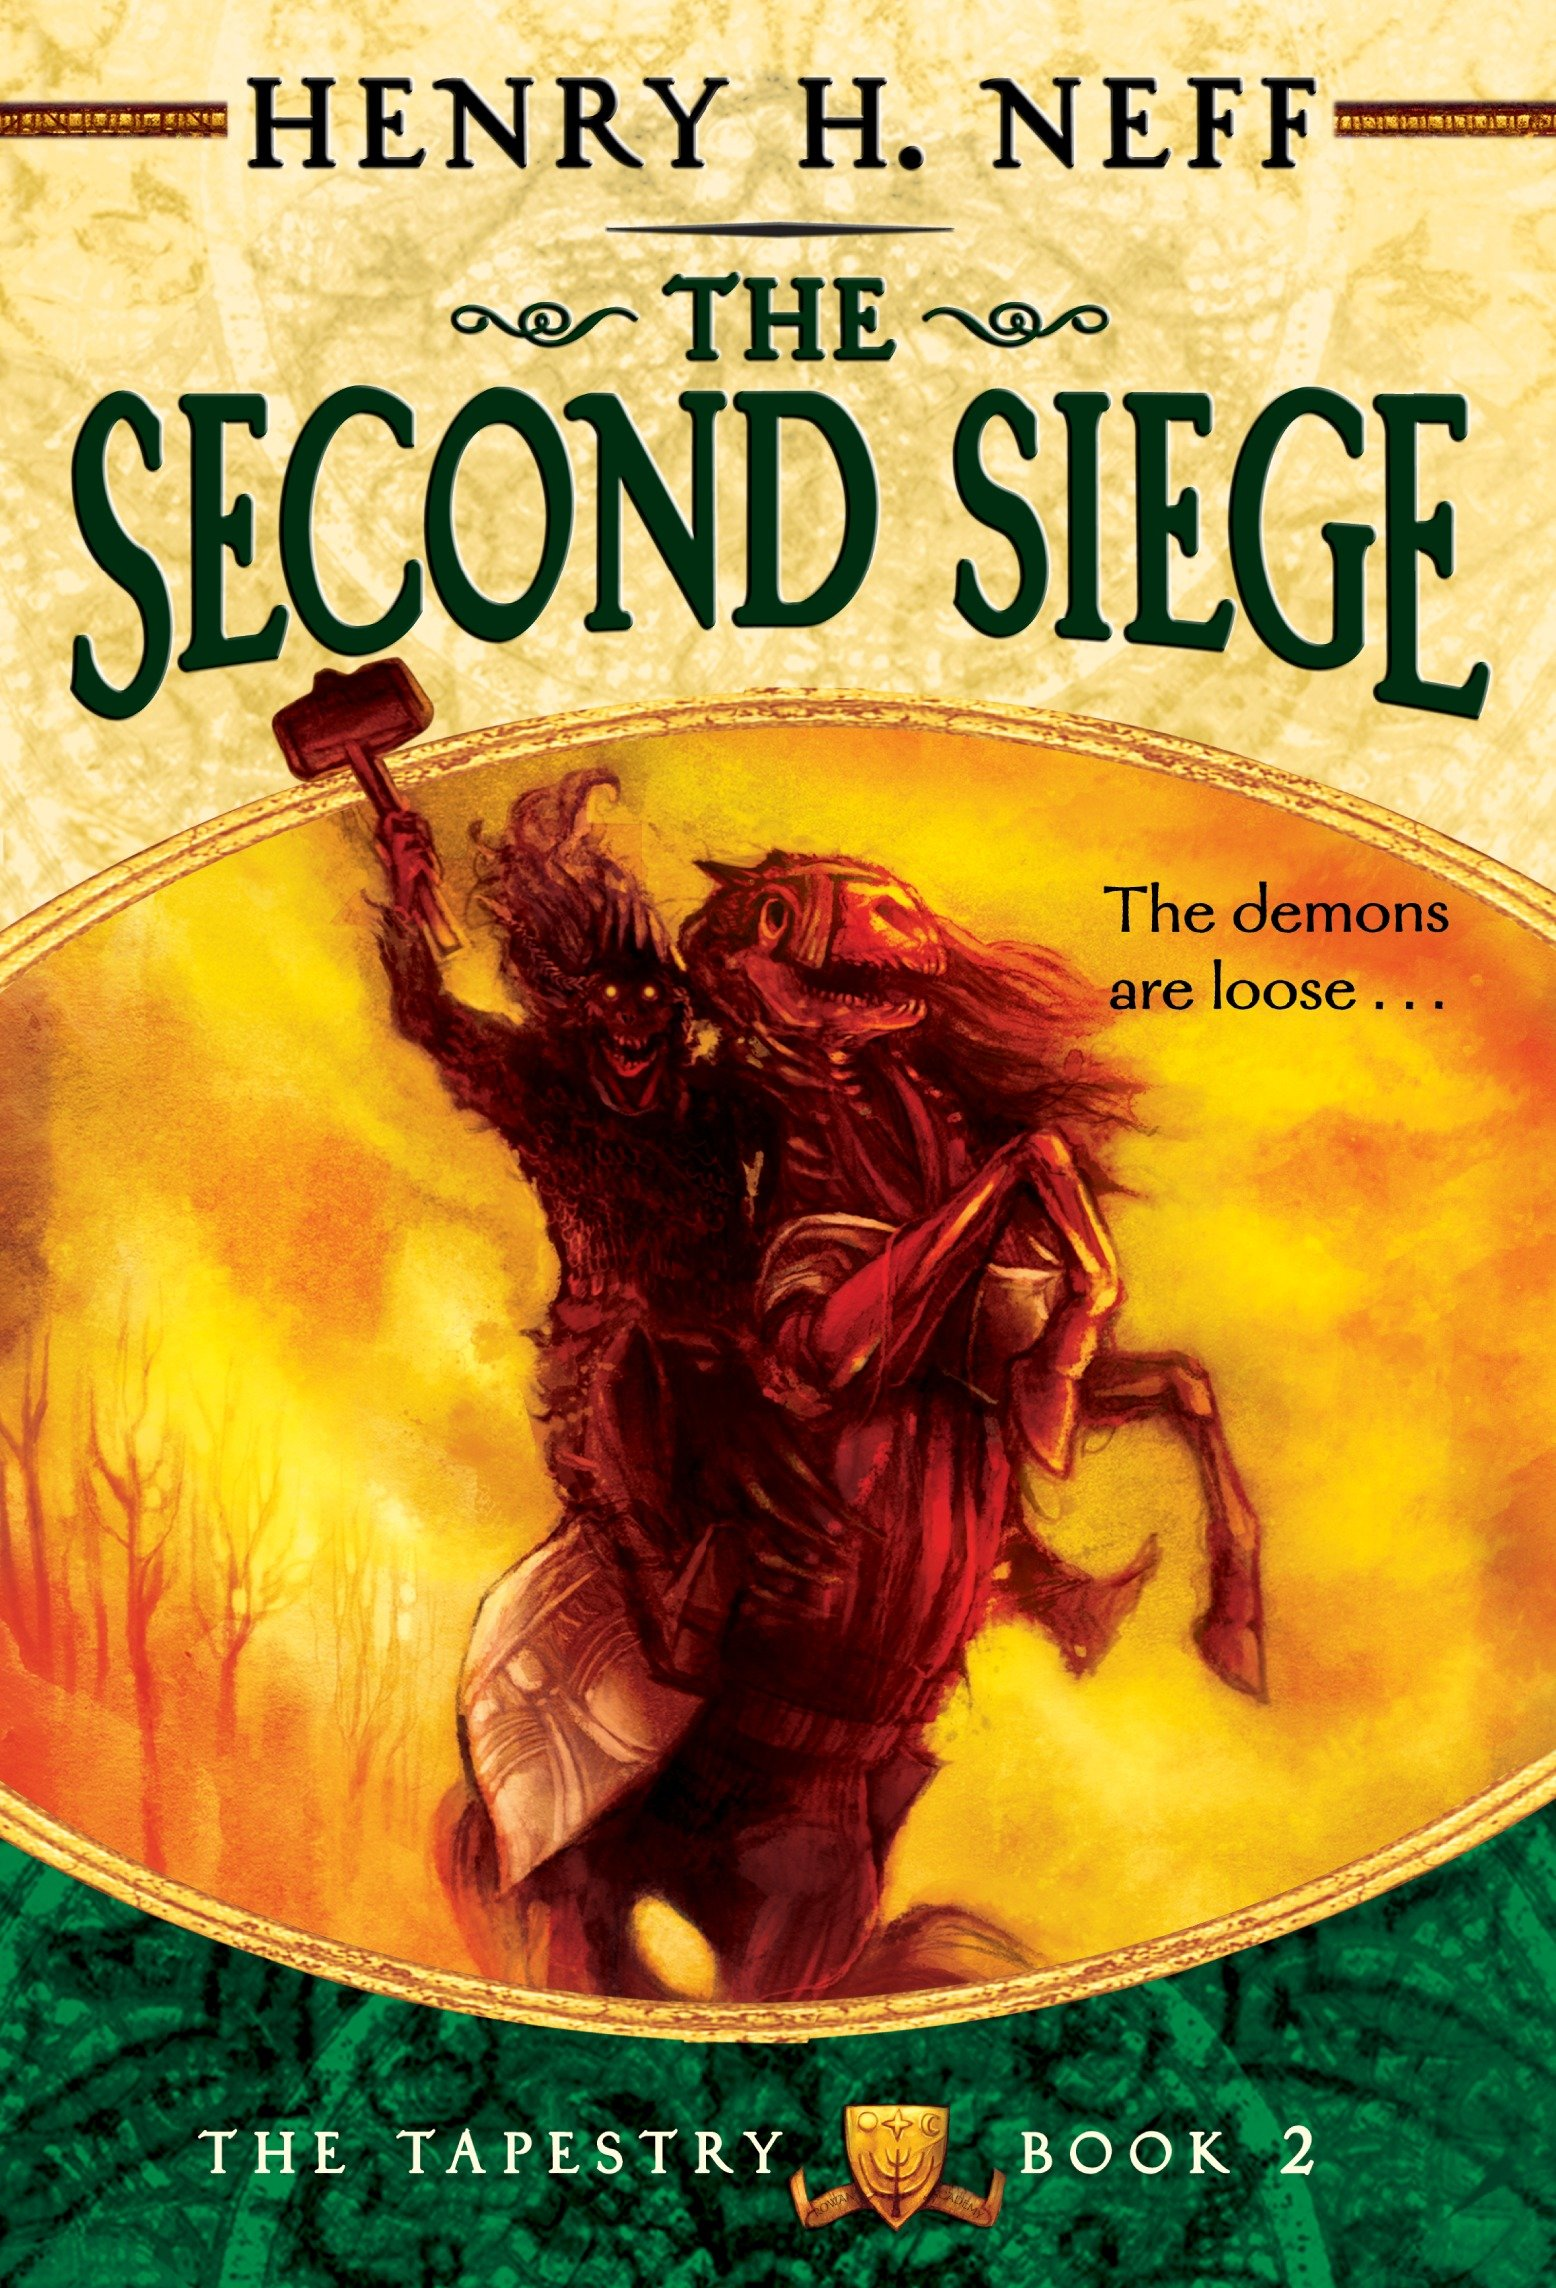 The second siege book two of the tapestry cover image